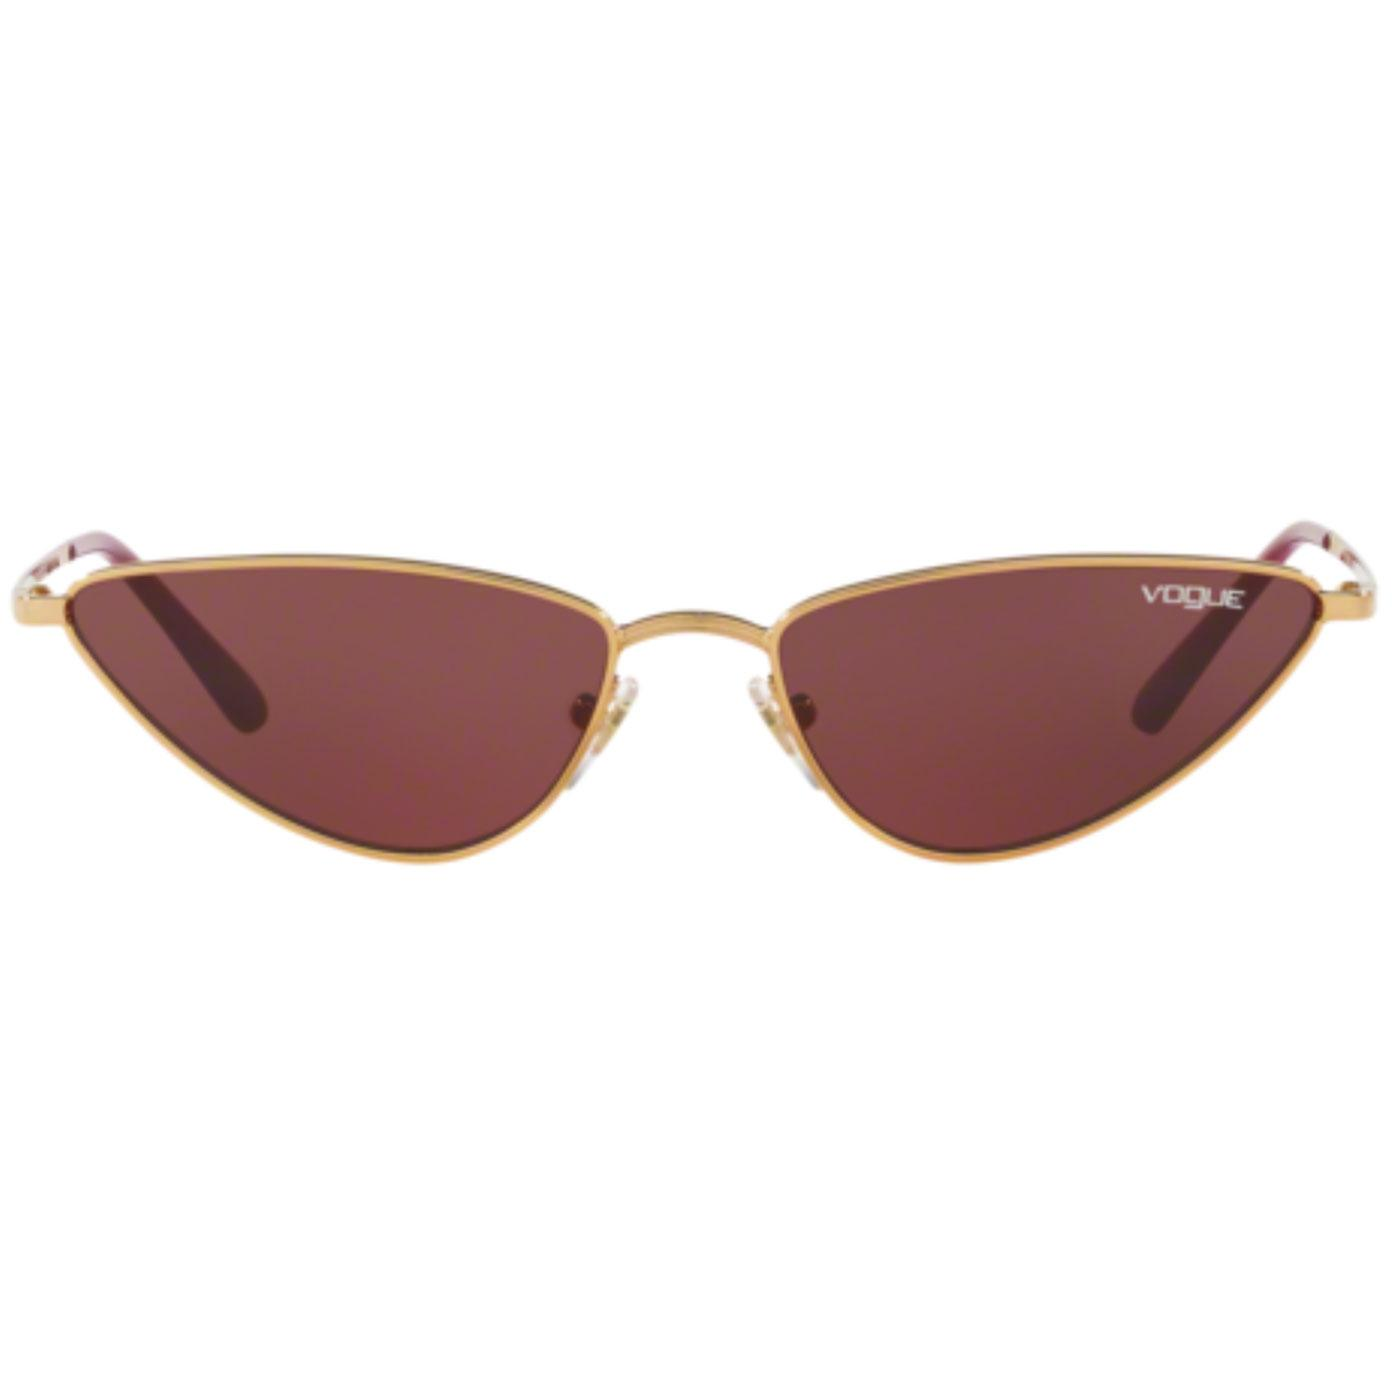 La Fayette VOGUE x GIGI HADID Retro 60s Sunglasses